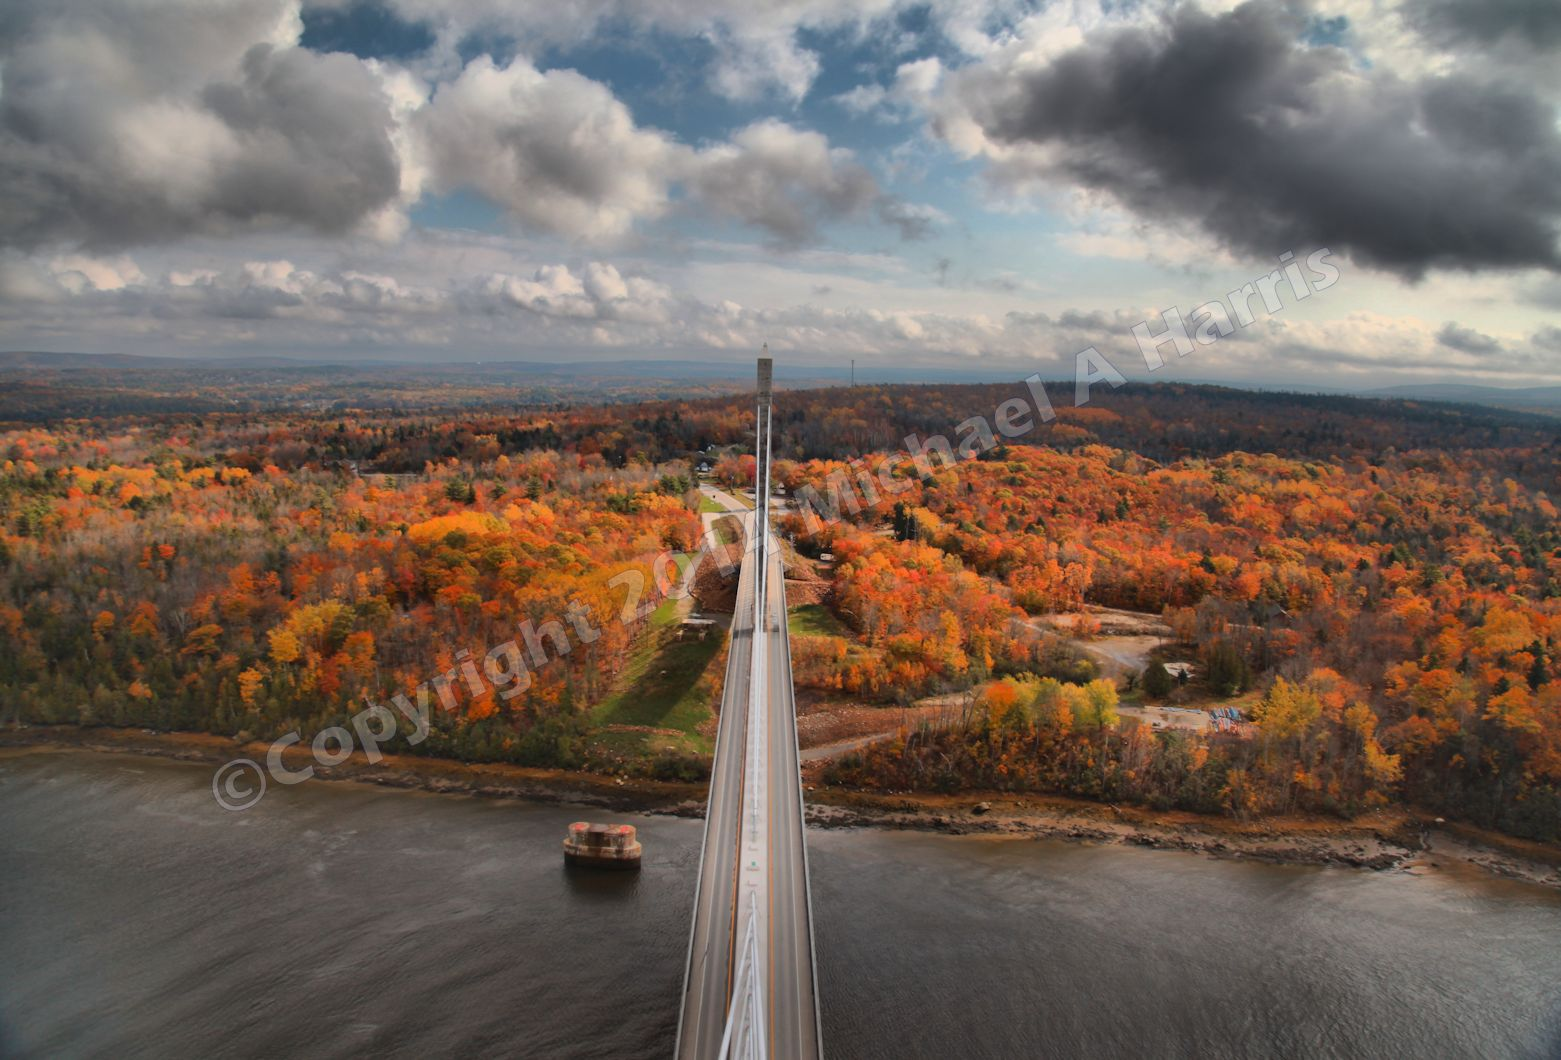 Penobscot Bridge, Maine